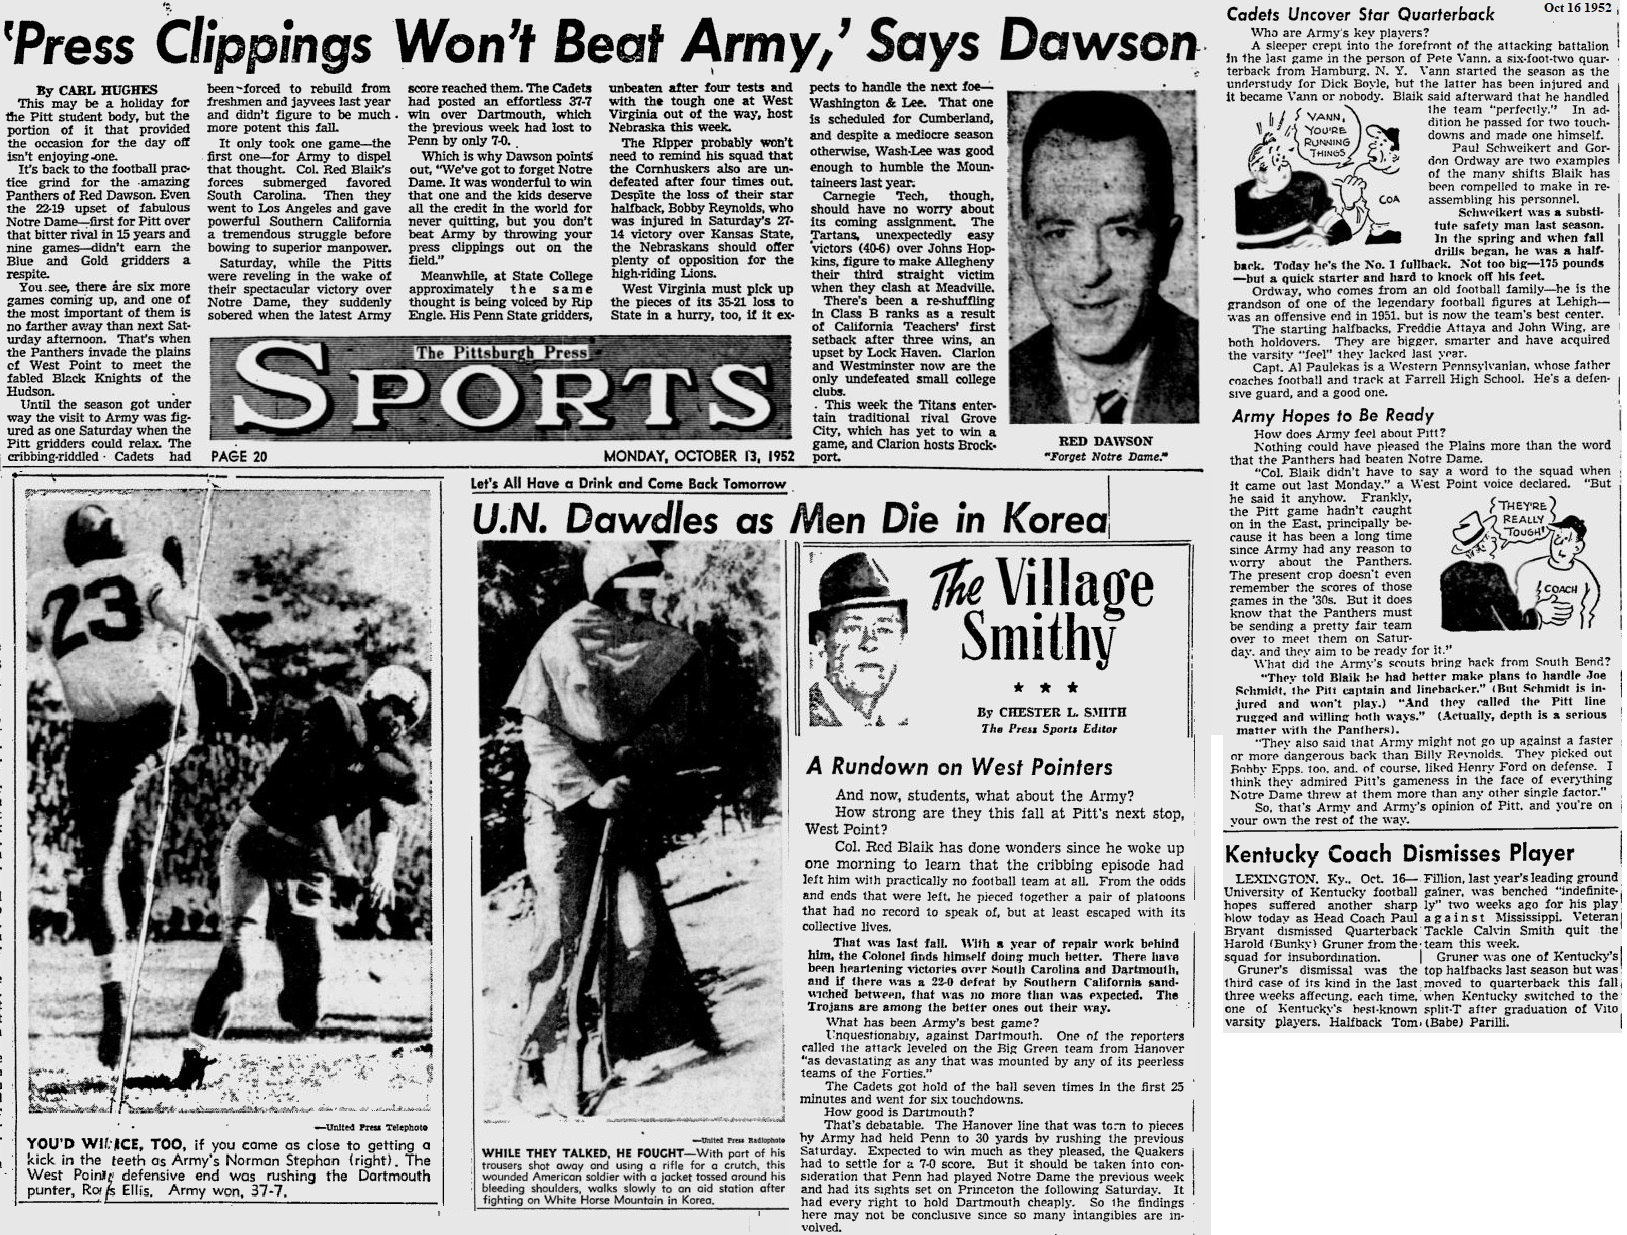 ArmyFB_1952_vsPitt_PittsburghPress_Oct13-161952